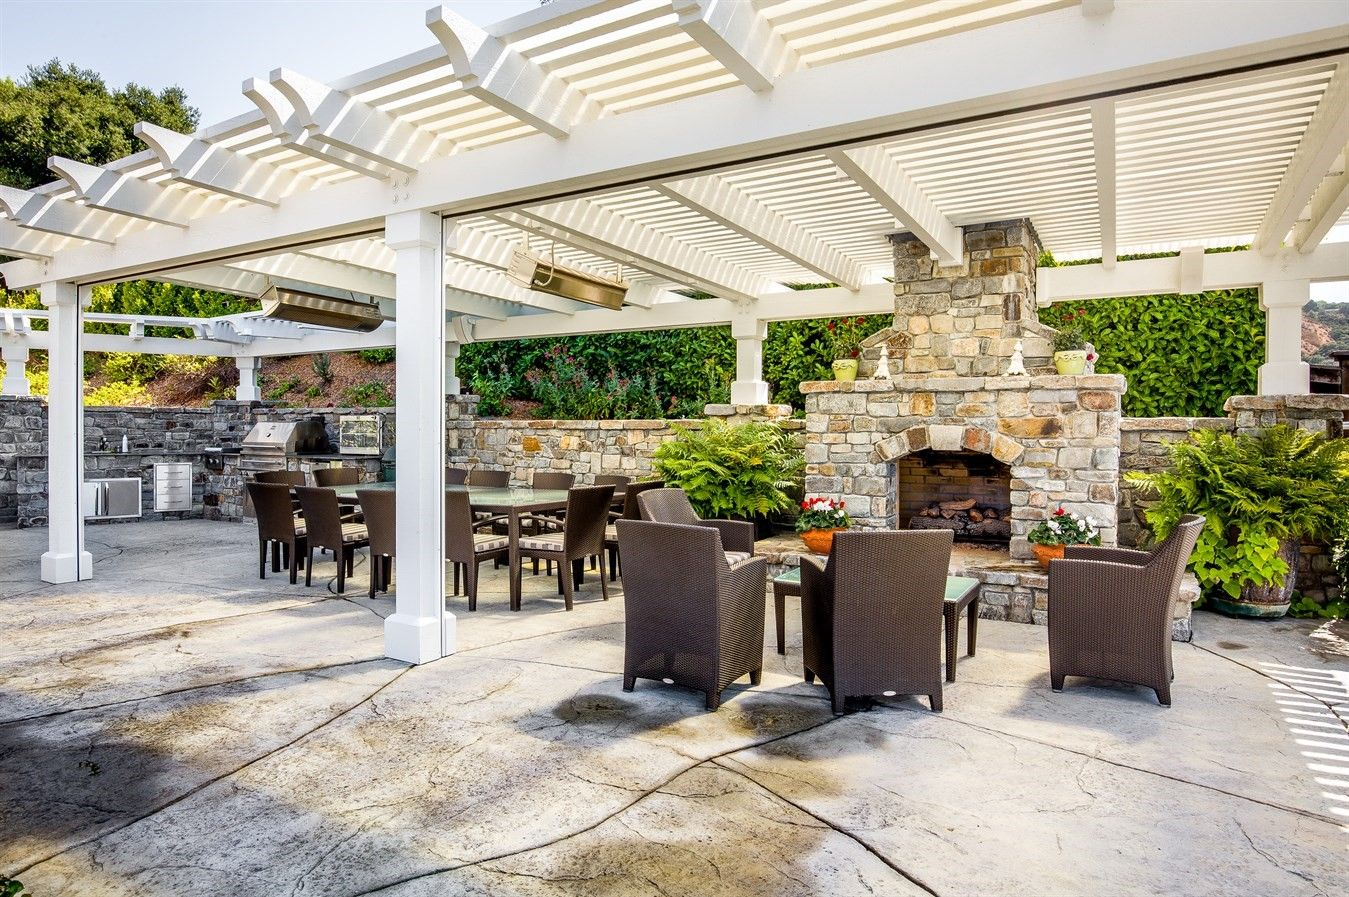 Amazing Patio With Fireplace Outdoor Kitchen Dining And Relaxing Areas Outdoor Outdoor Living Patio